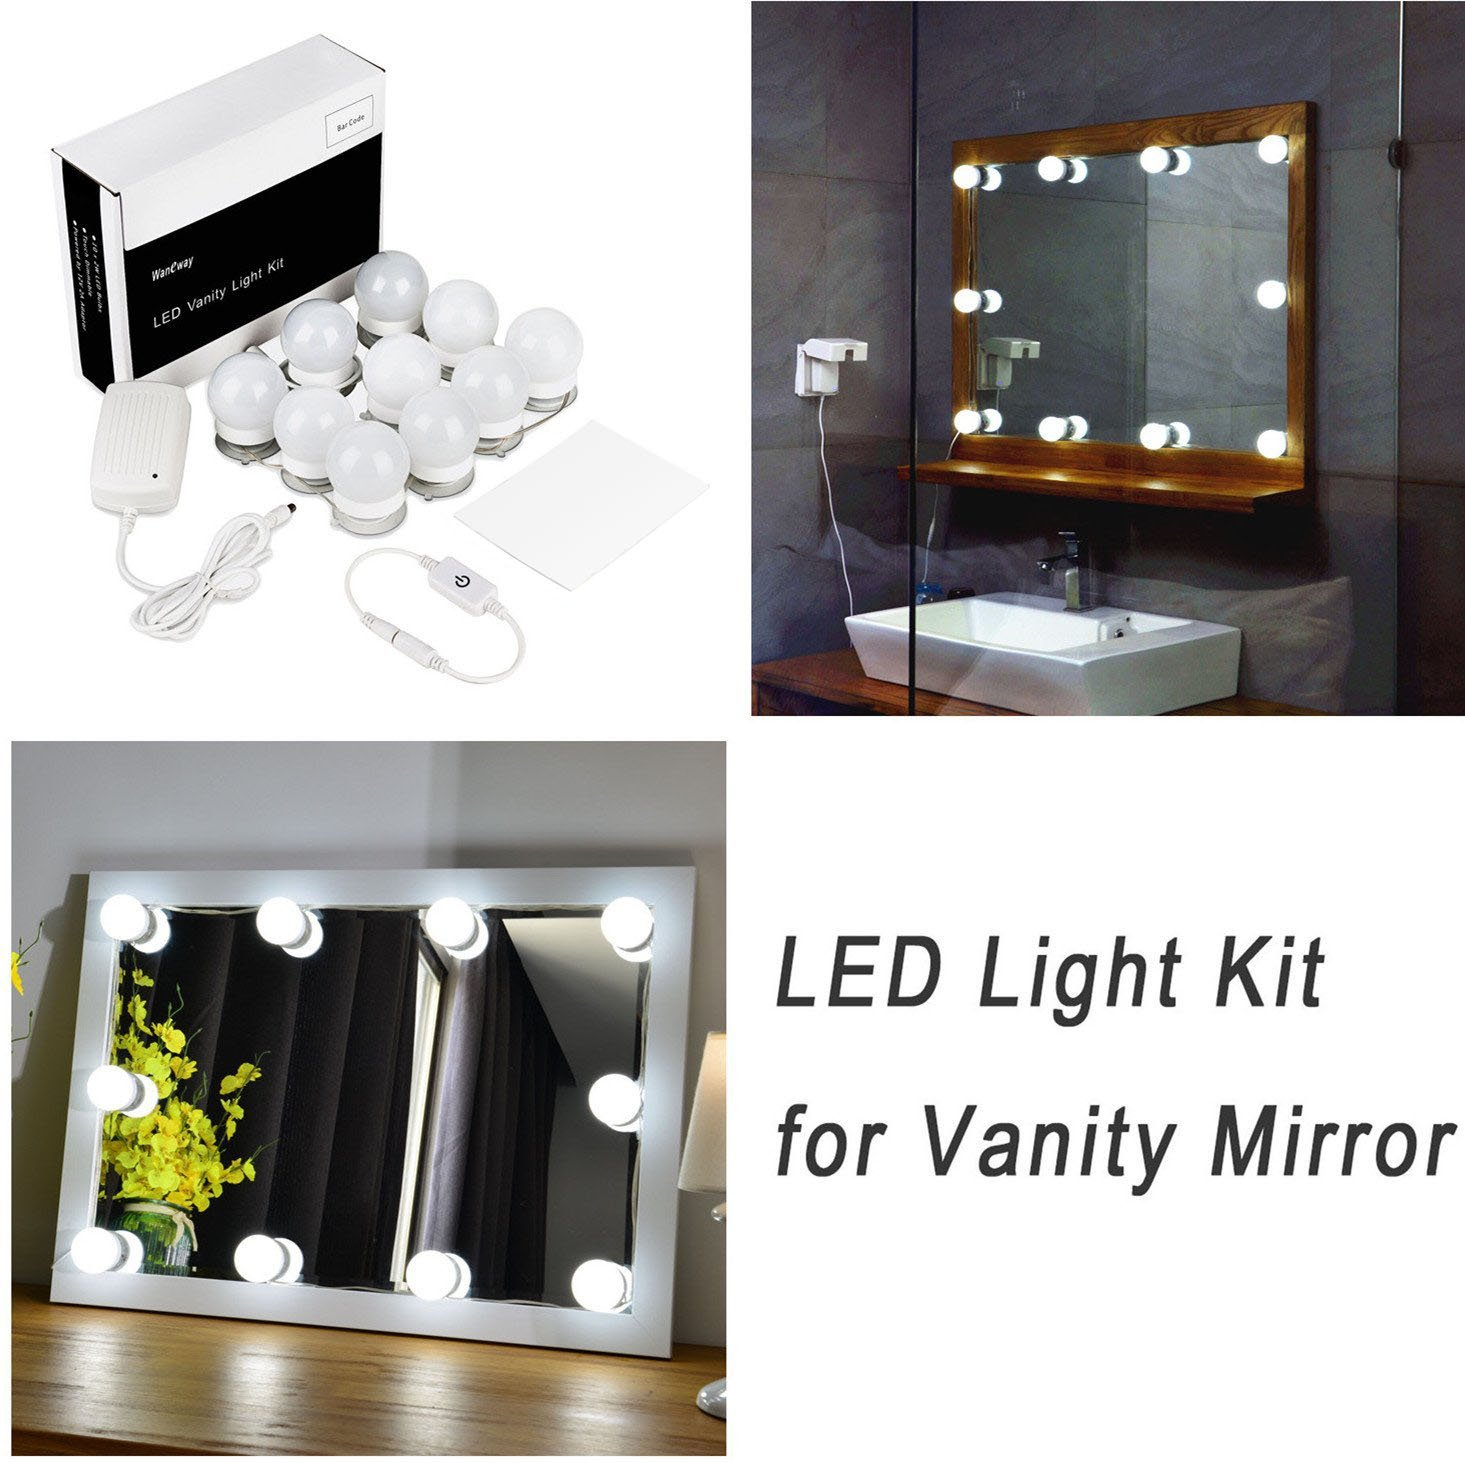 Hollywood style led vanity mirror lights kit for makeup dressing hollywood style led vanity mirror lights kit for makeup dressing table vanity set mirrors with dimmer and power supply plug in lighting fixture strip mozeypictures